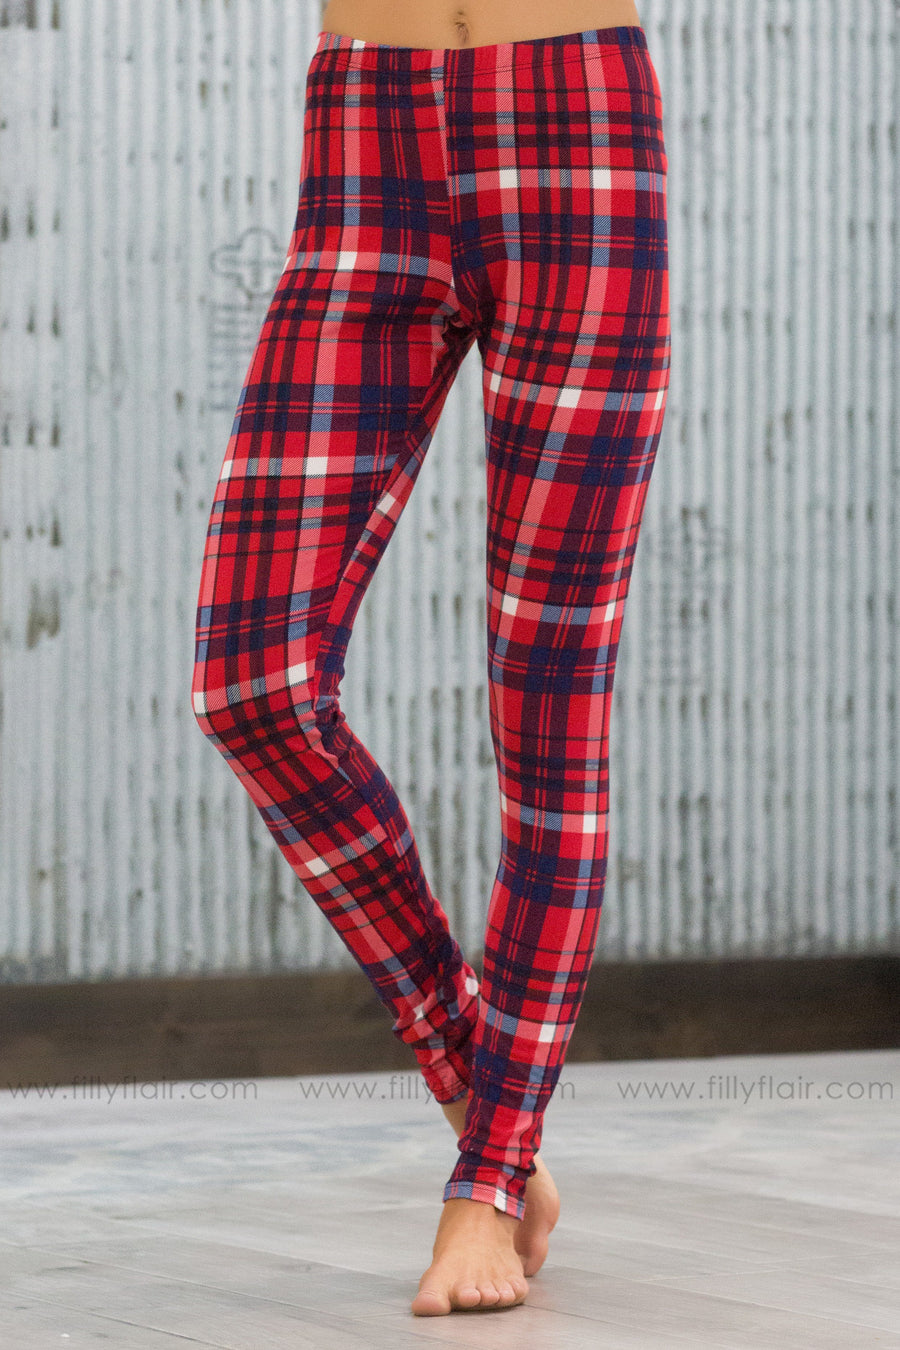 c1e3a6fc8d1ce4 Buy comfortable leggings in attractive colors & designs - Filly Flair